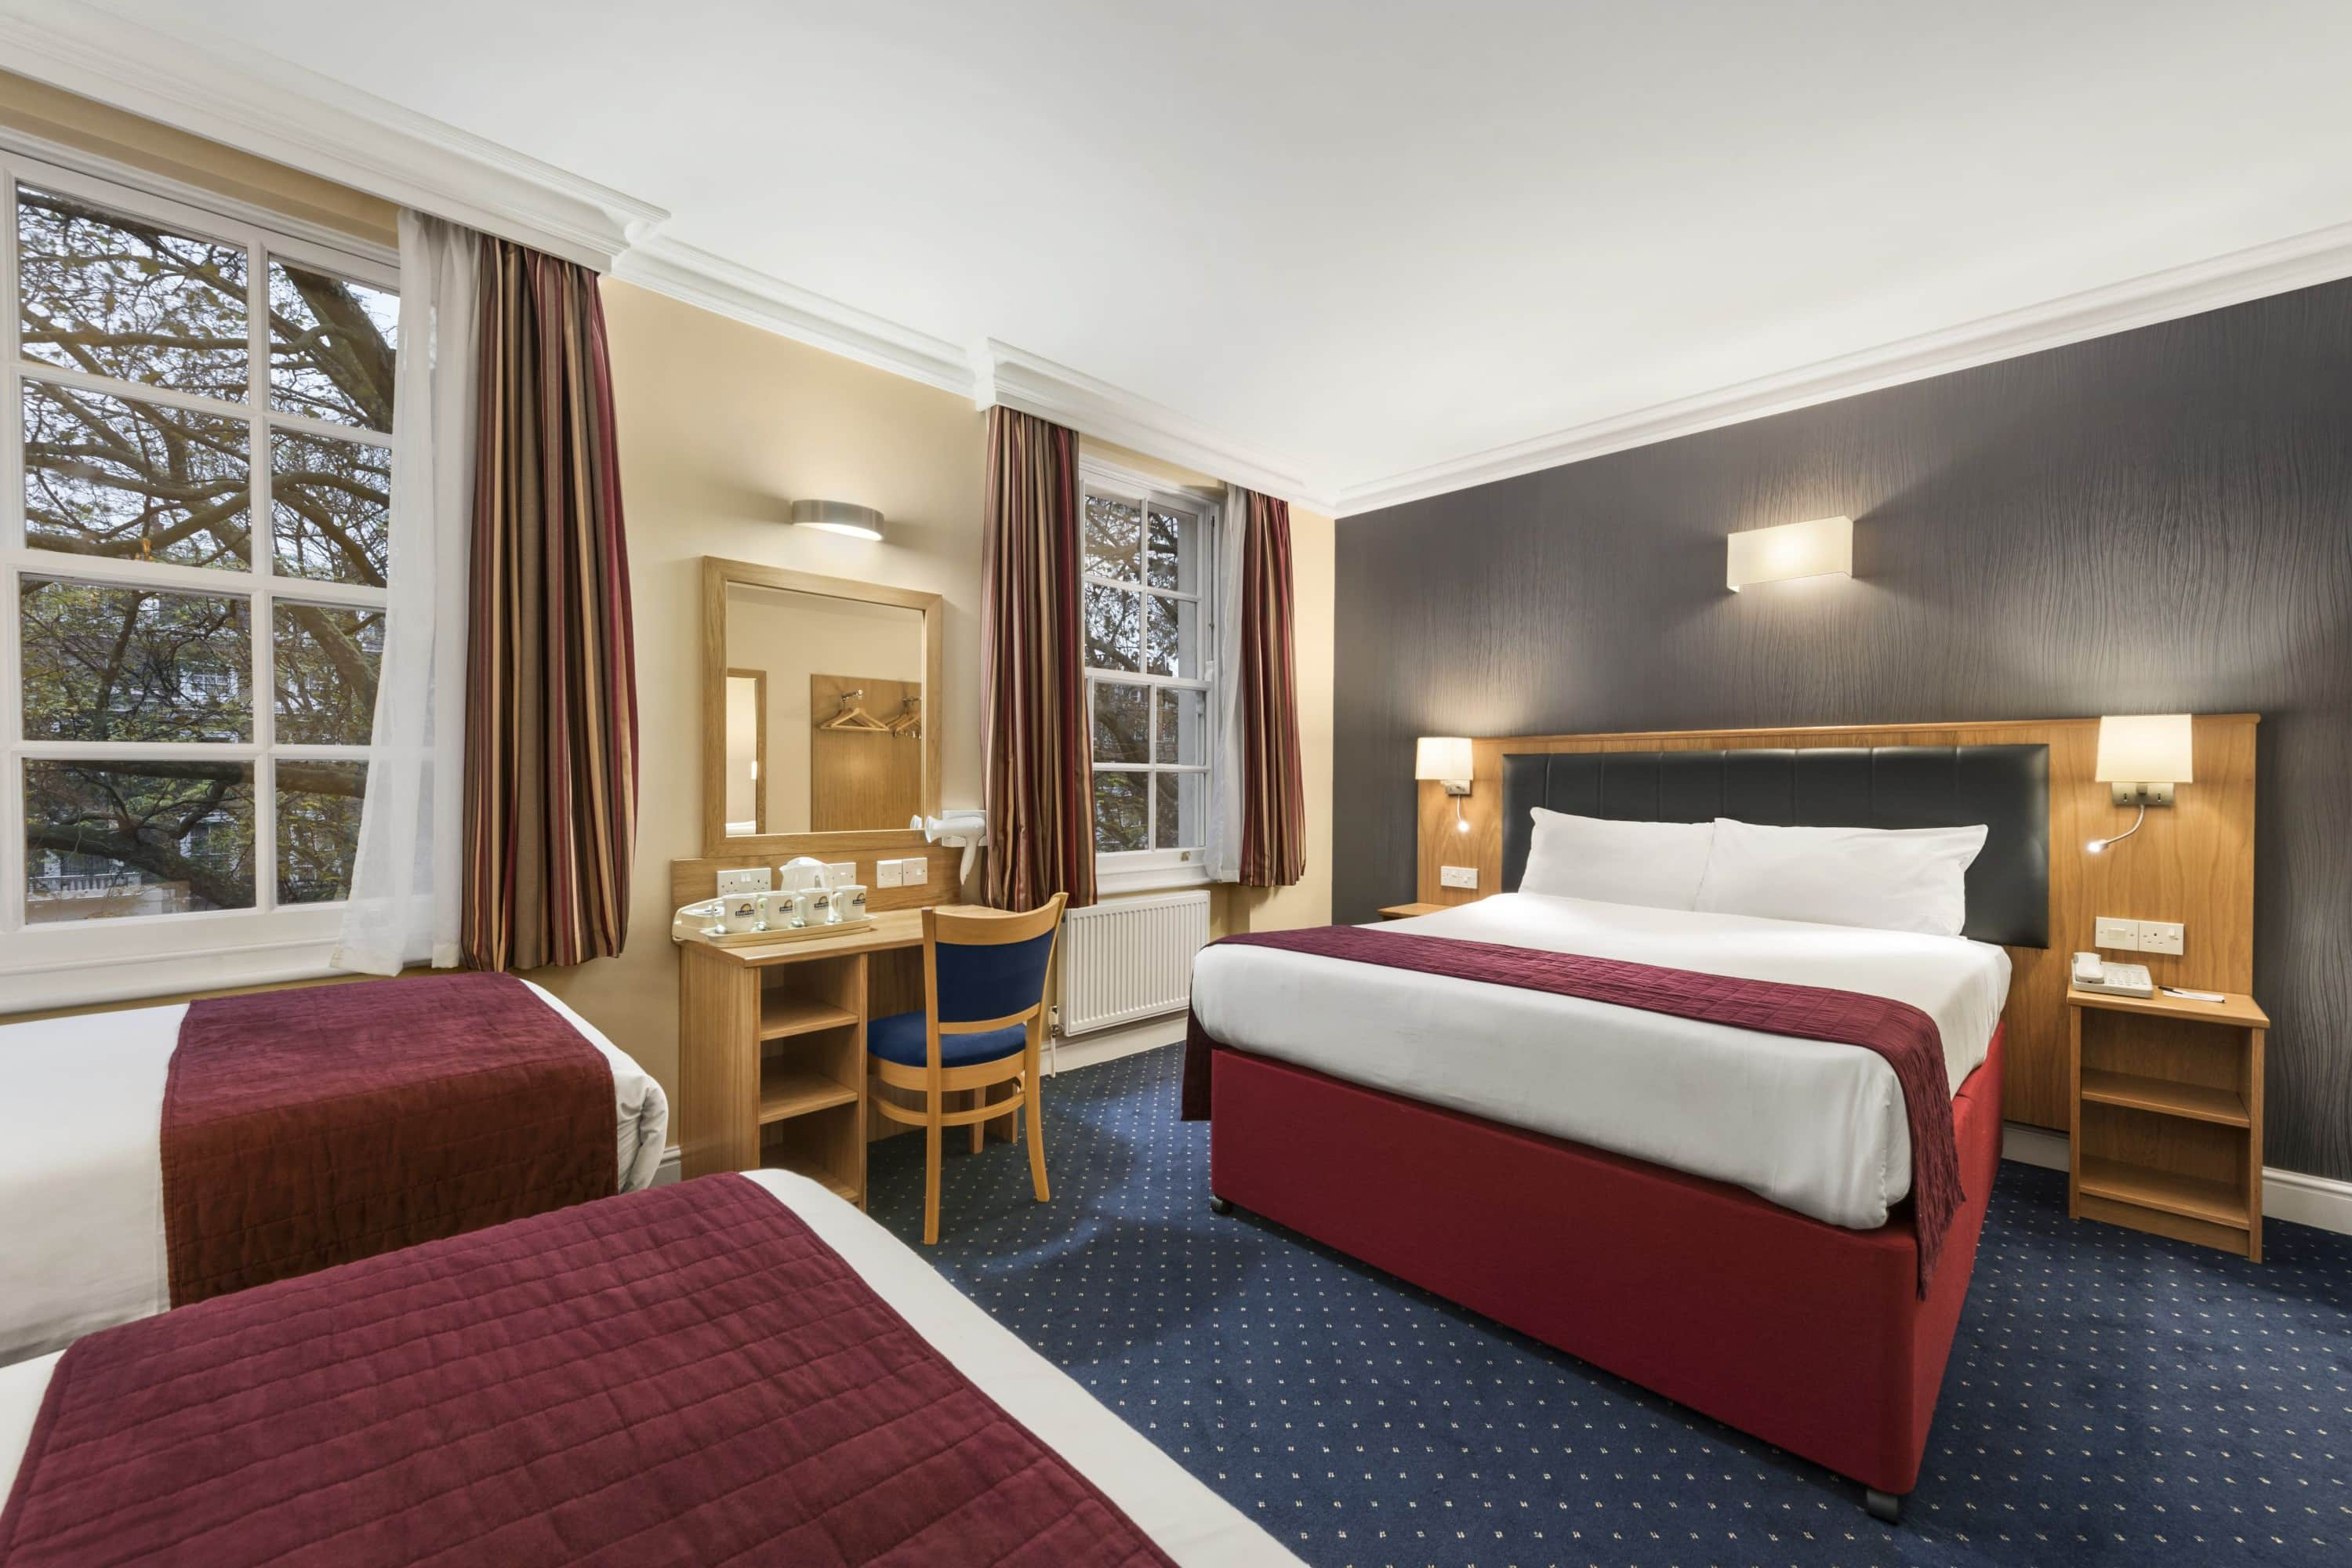 Guest room at the Days Inn London Hyde Park in London, Other than US/Canada